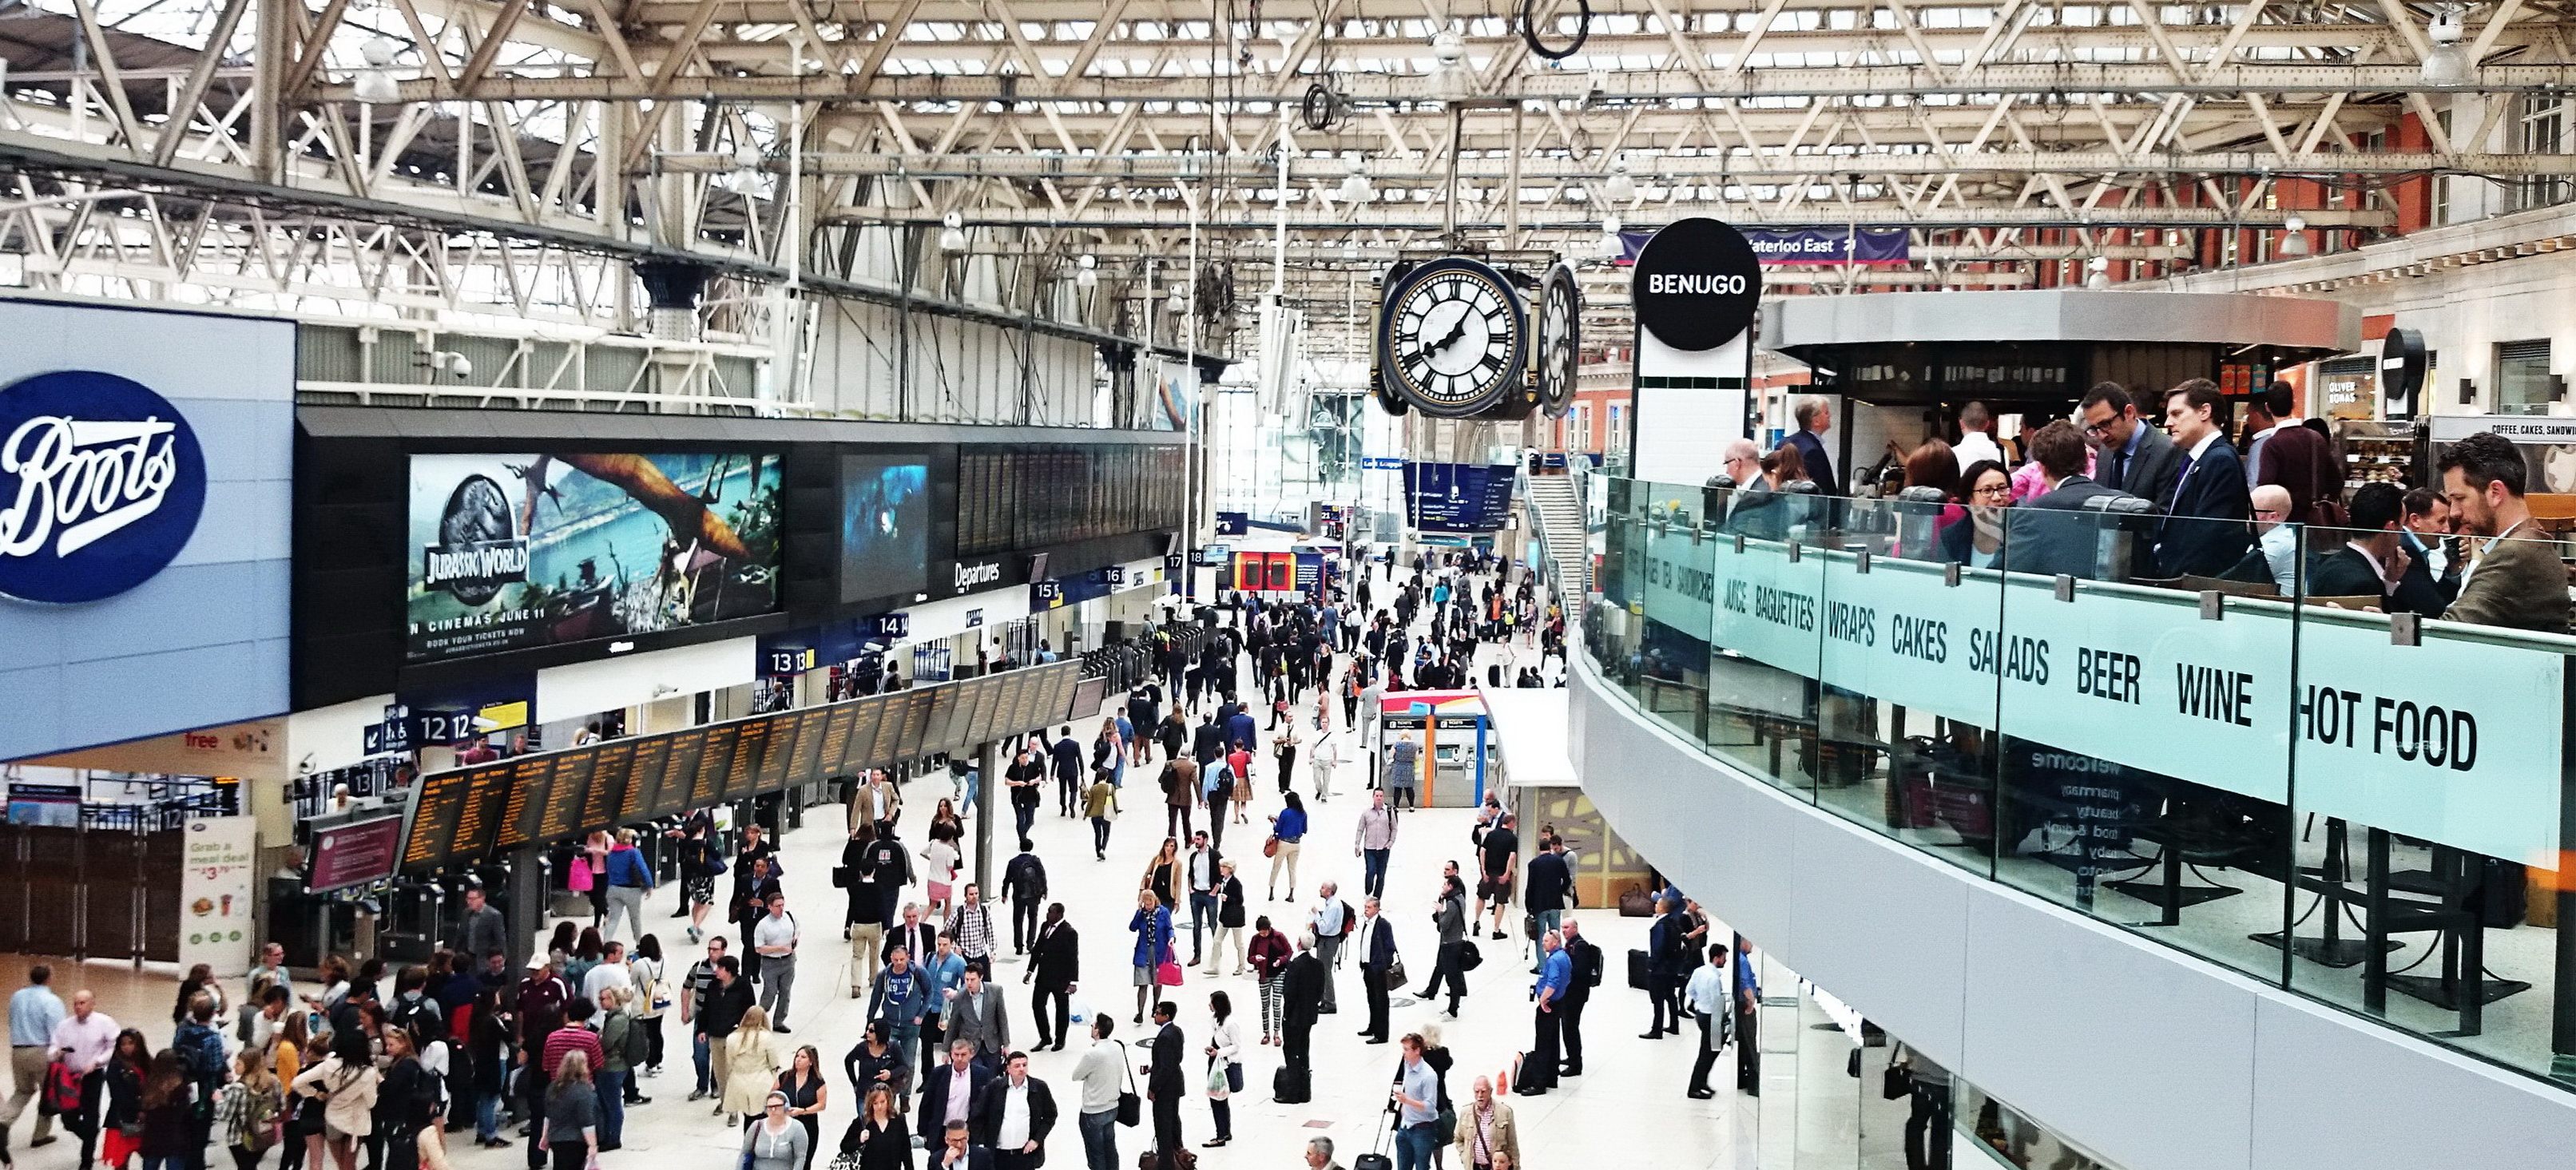 London. Waterloo station. 8 am. Friday